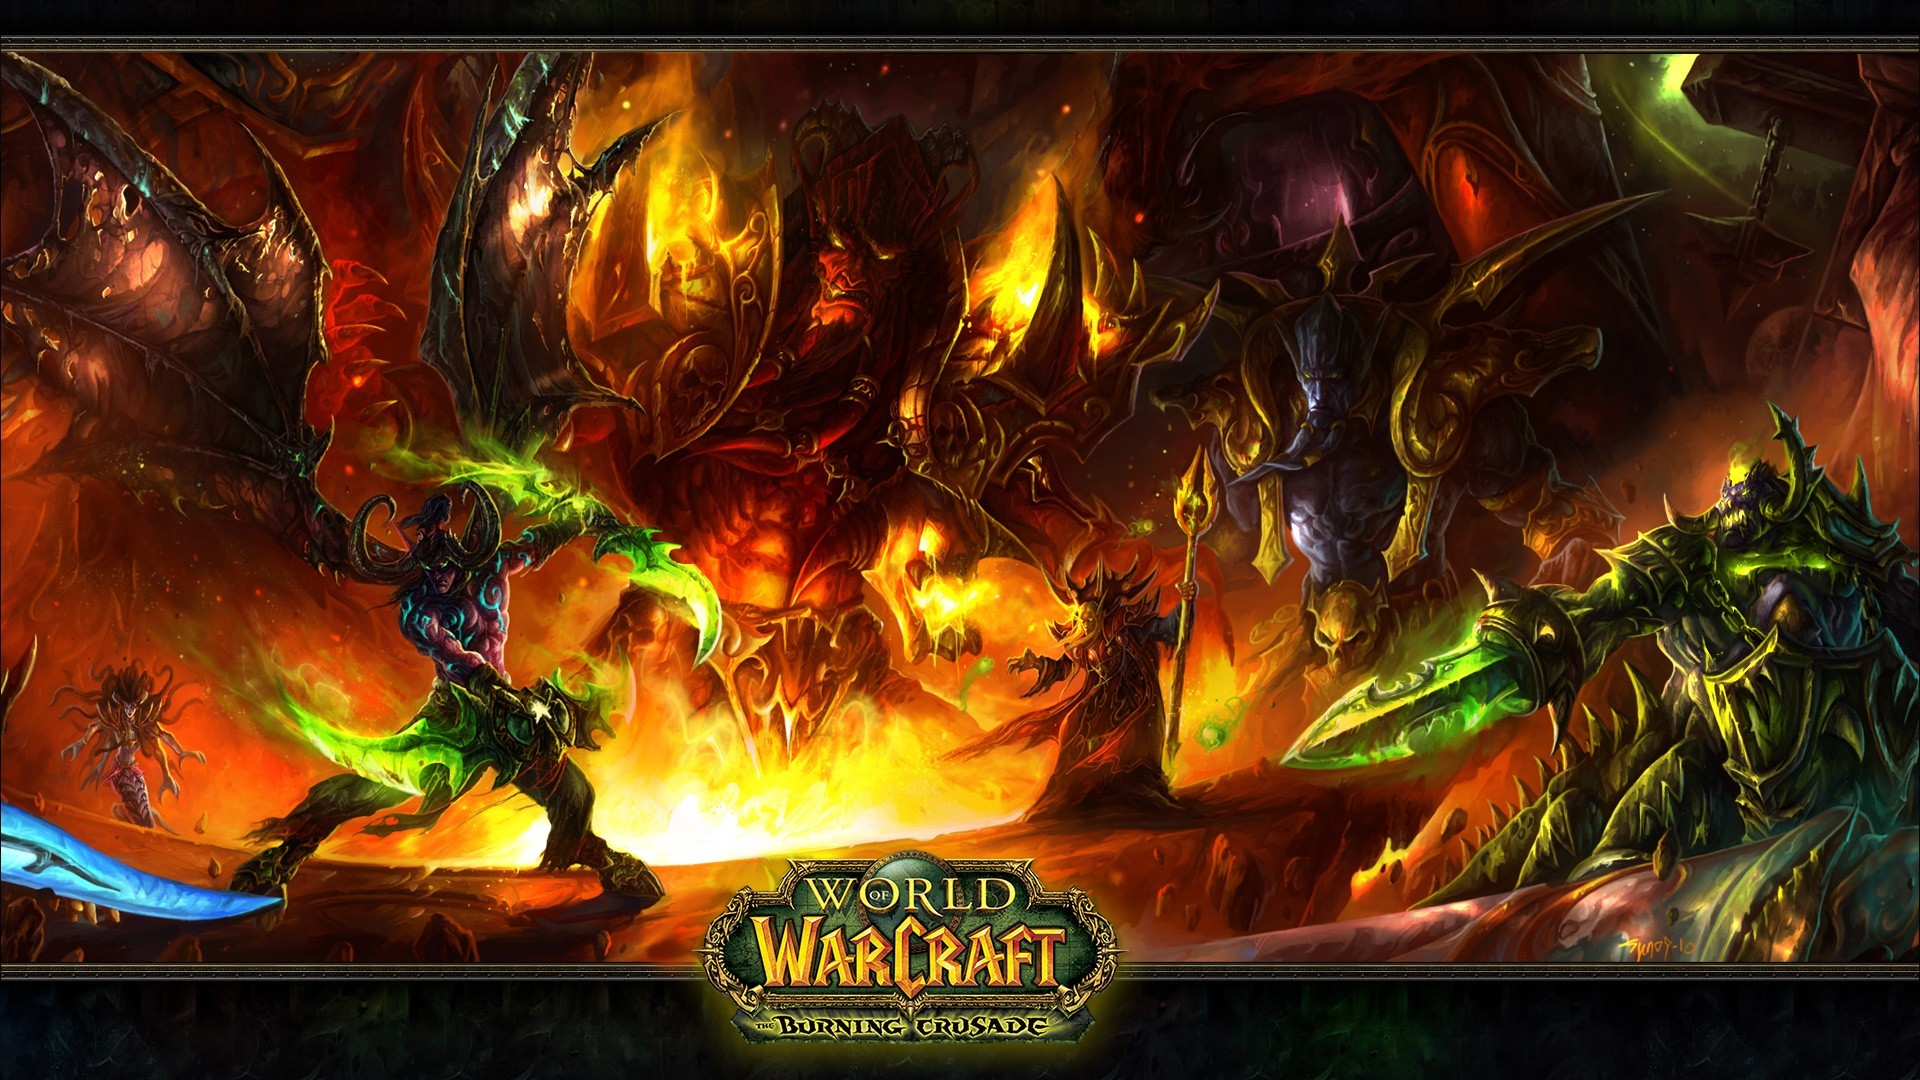 Res: 1920x1080, 1000+ ideas about World Of Warcraft Wallpaper on Pinterest | World